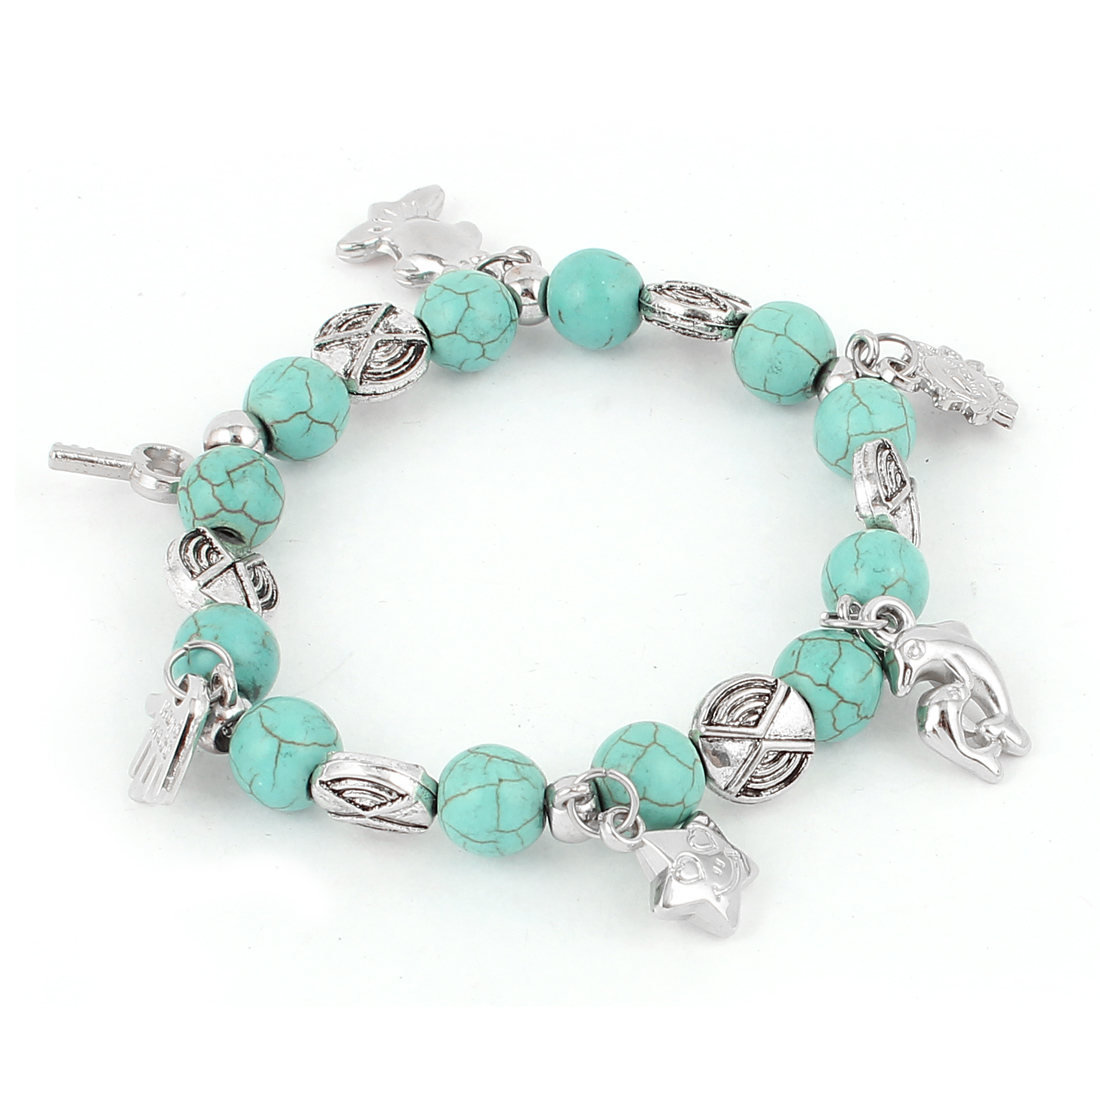 Hand Dolphin Key Star Dangled Turquoise Stone Beads Elastic Bracelet Bangle